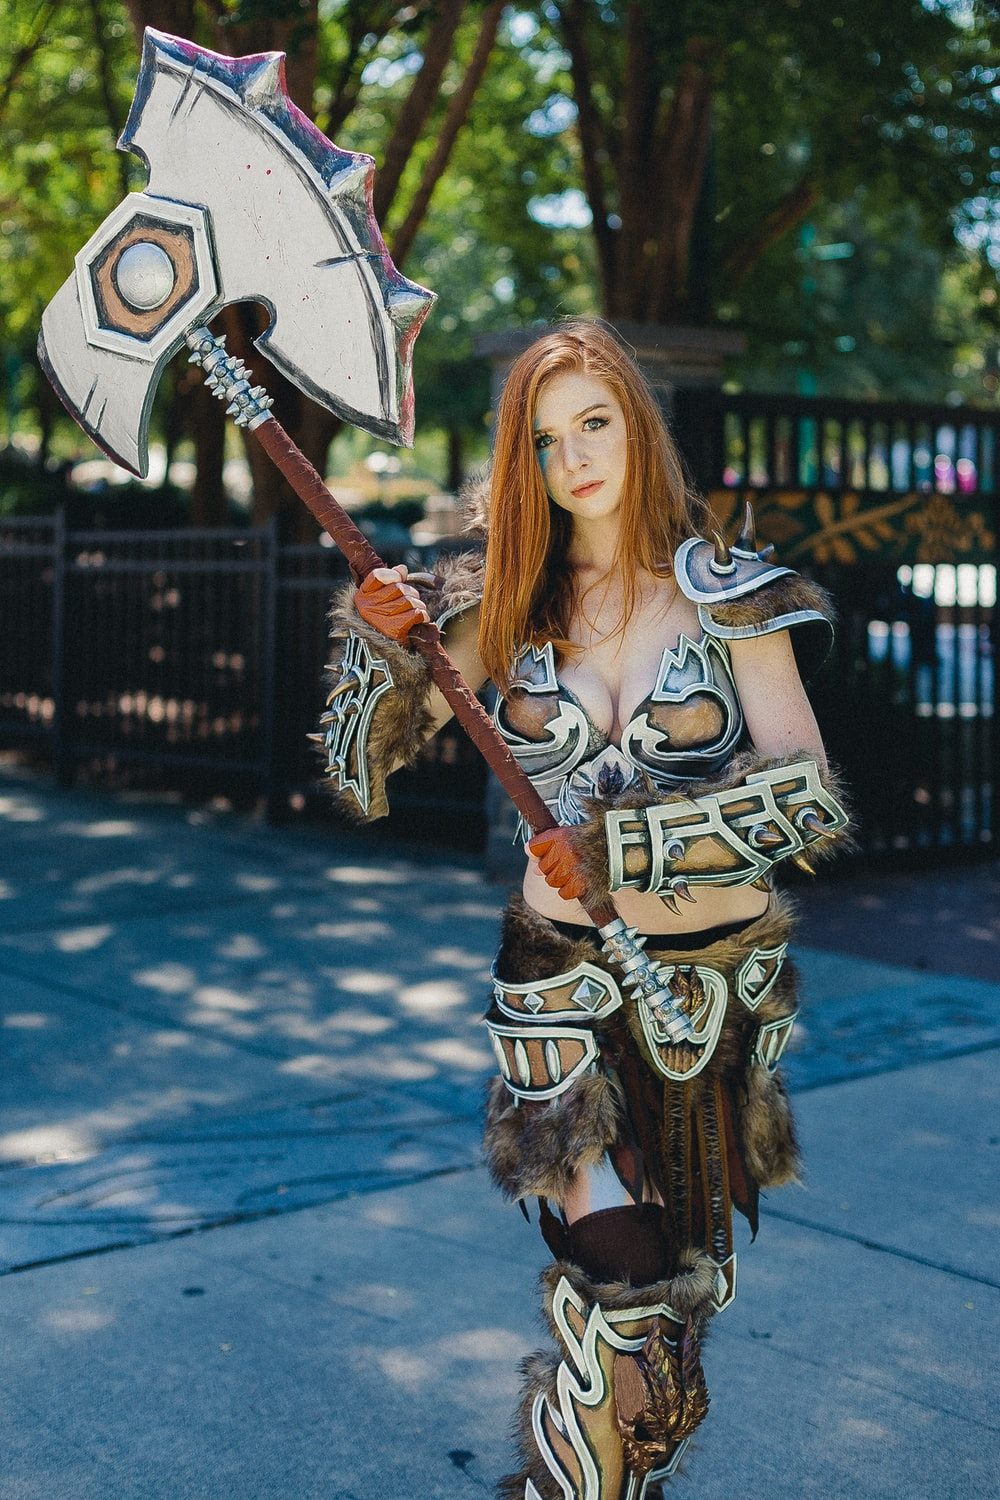 woman with cosplay costume holding swor